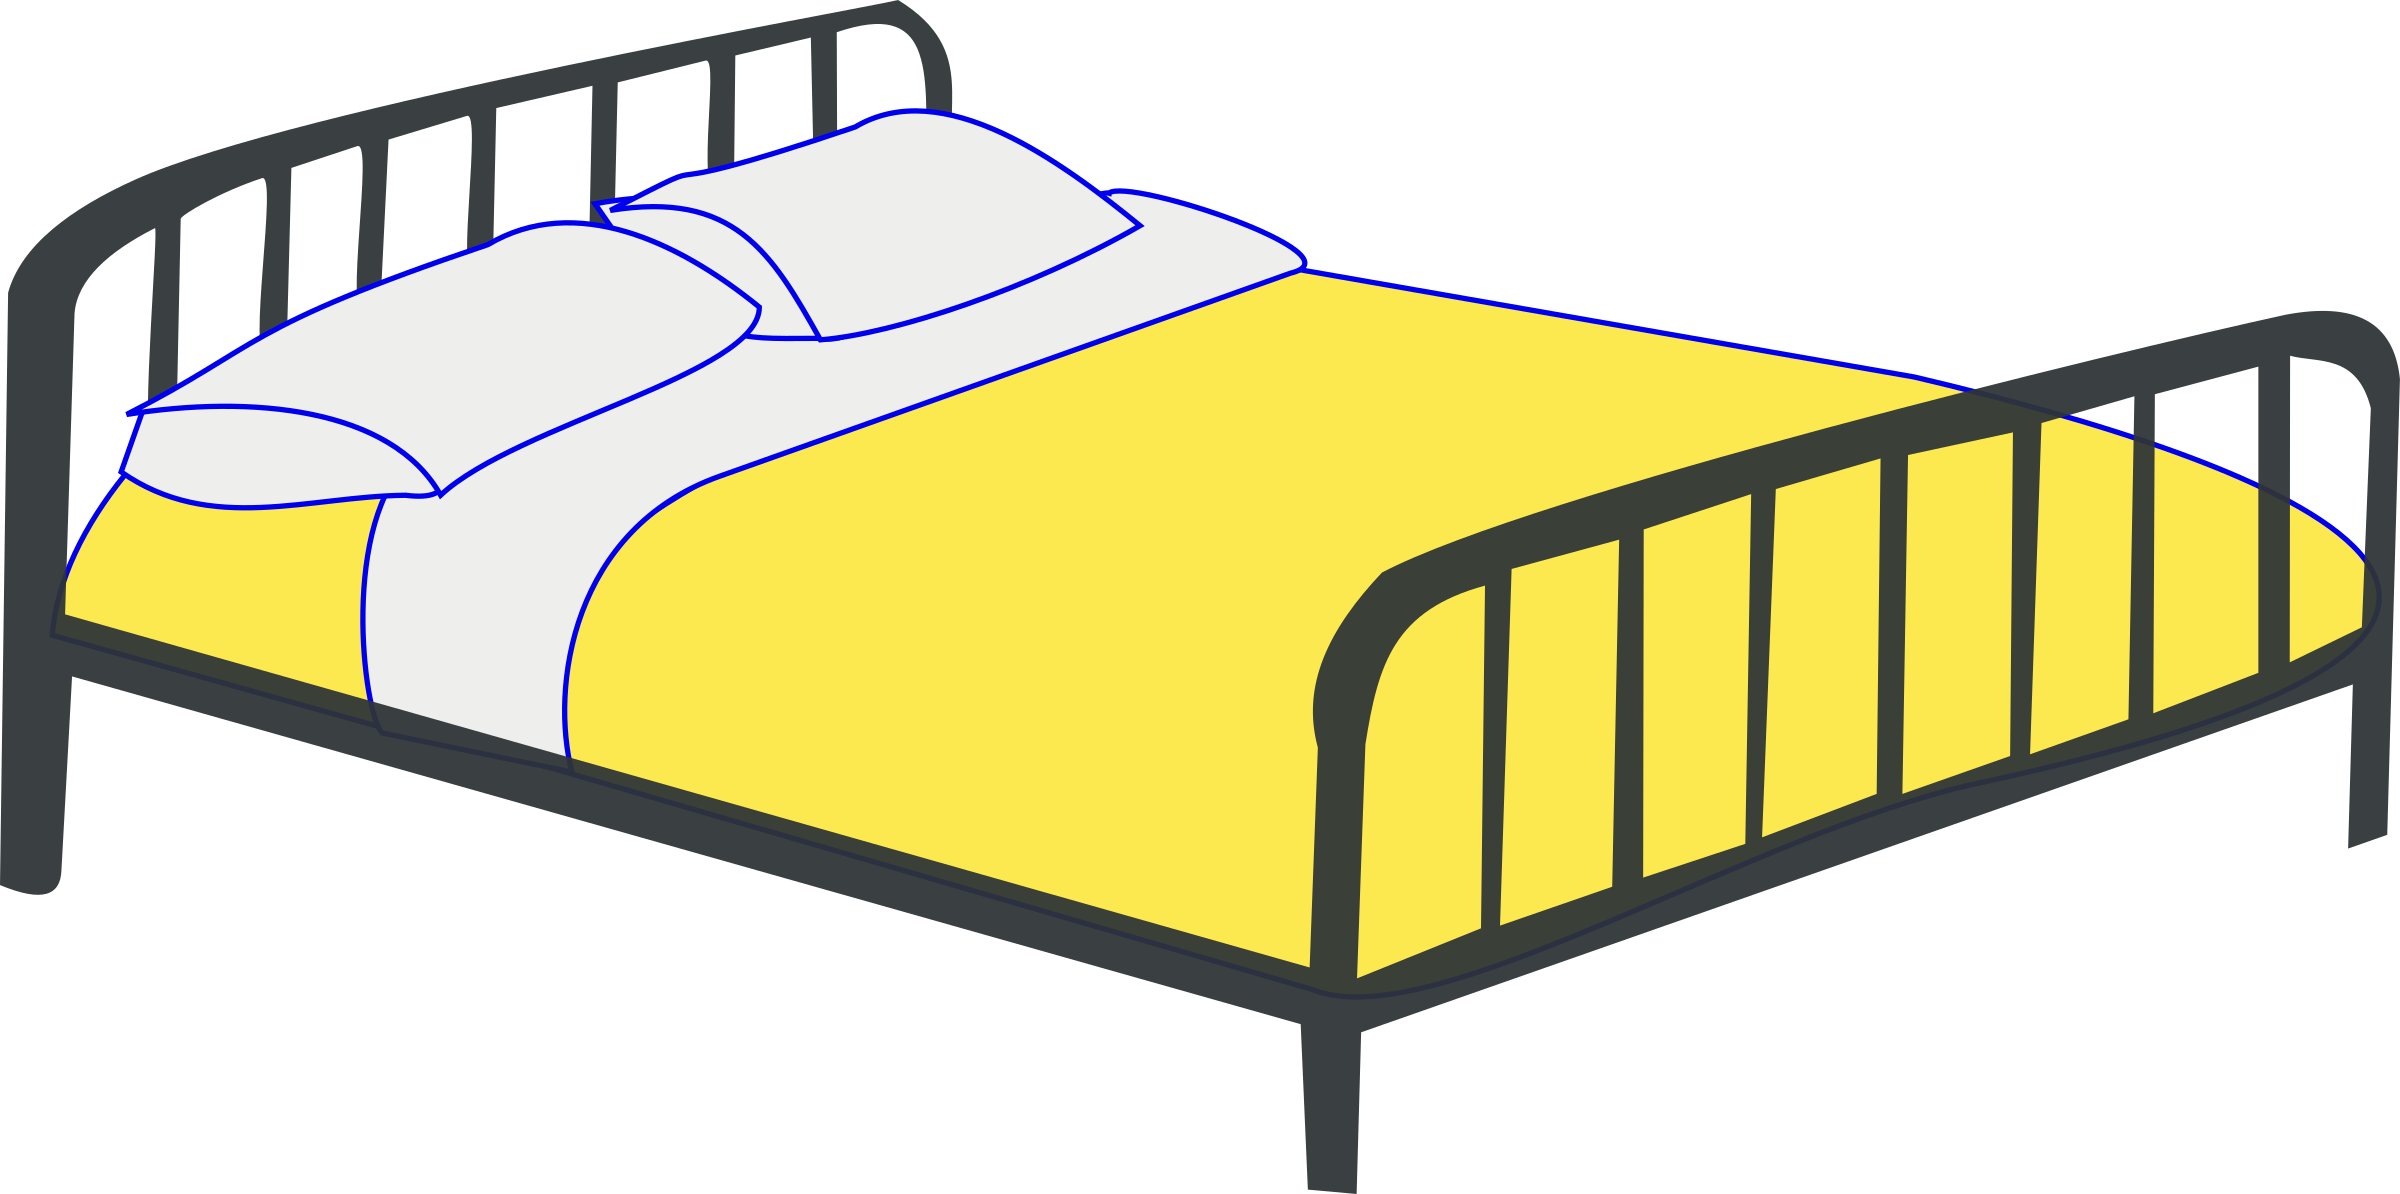 Furniture clipart double bed Bed Double Double Clipart Bed